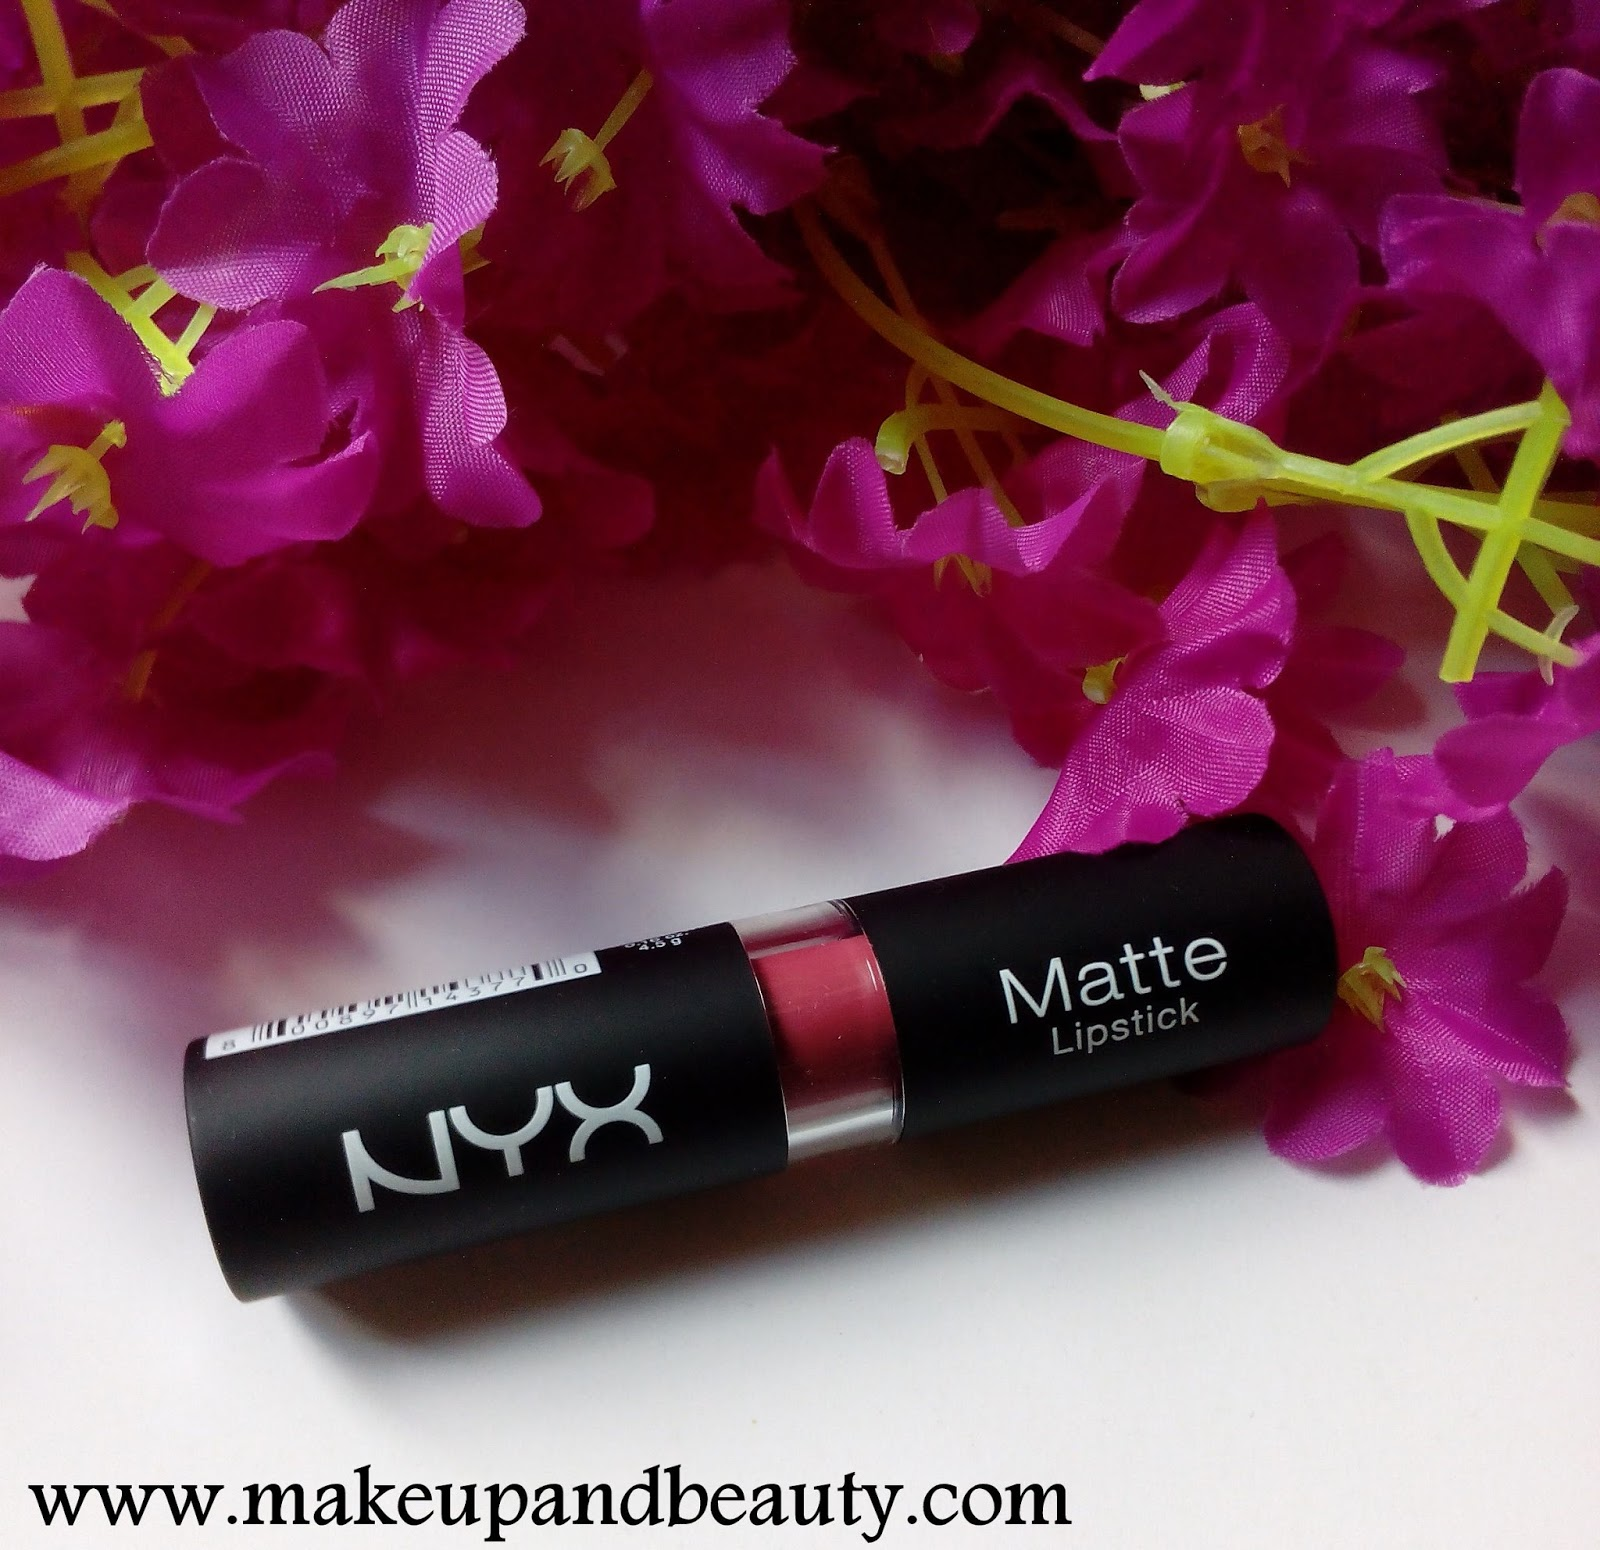 Makeup And Beauty Review And Swatches Of Nyx Matte Lipstick In